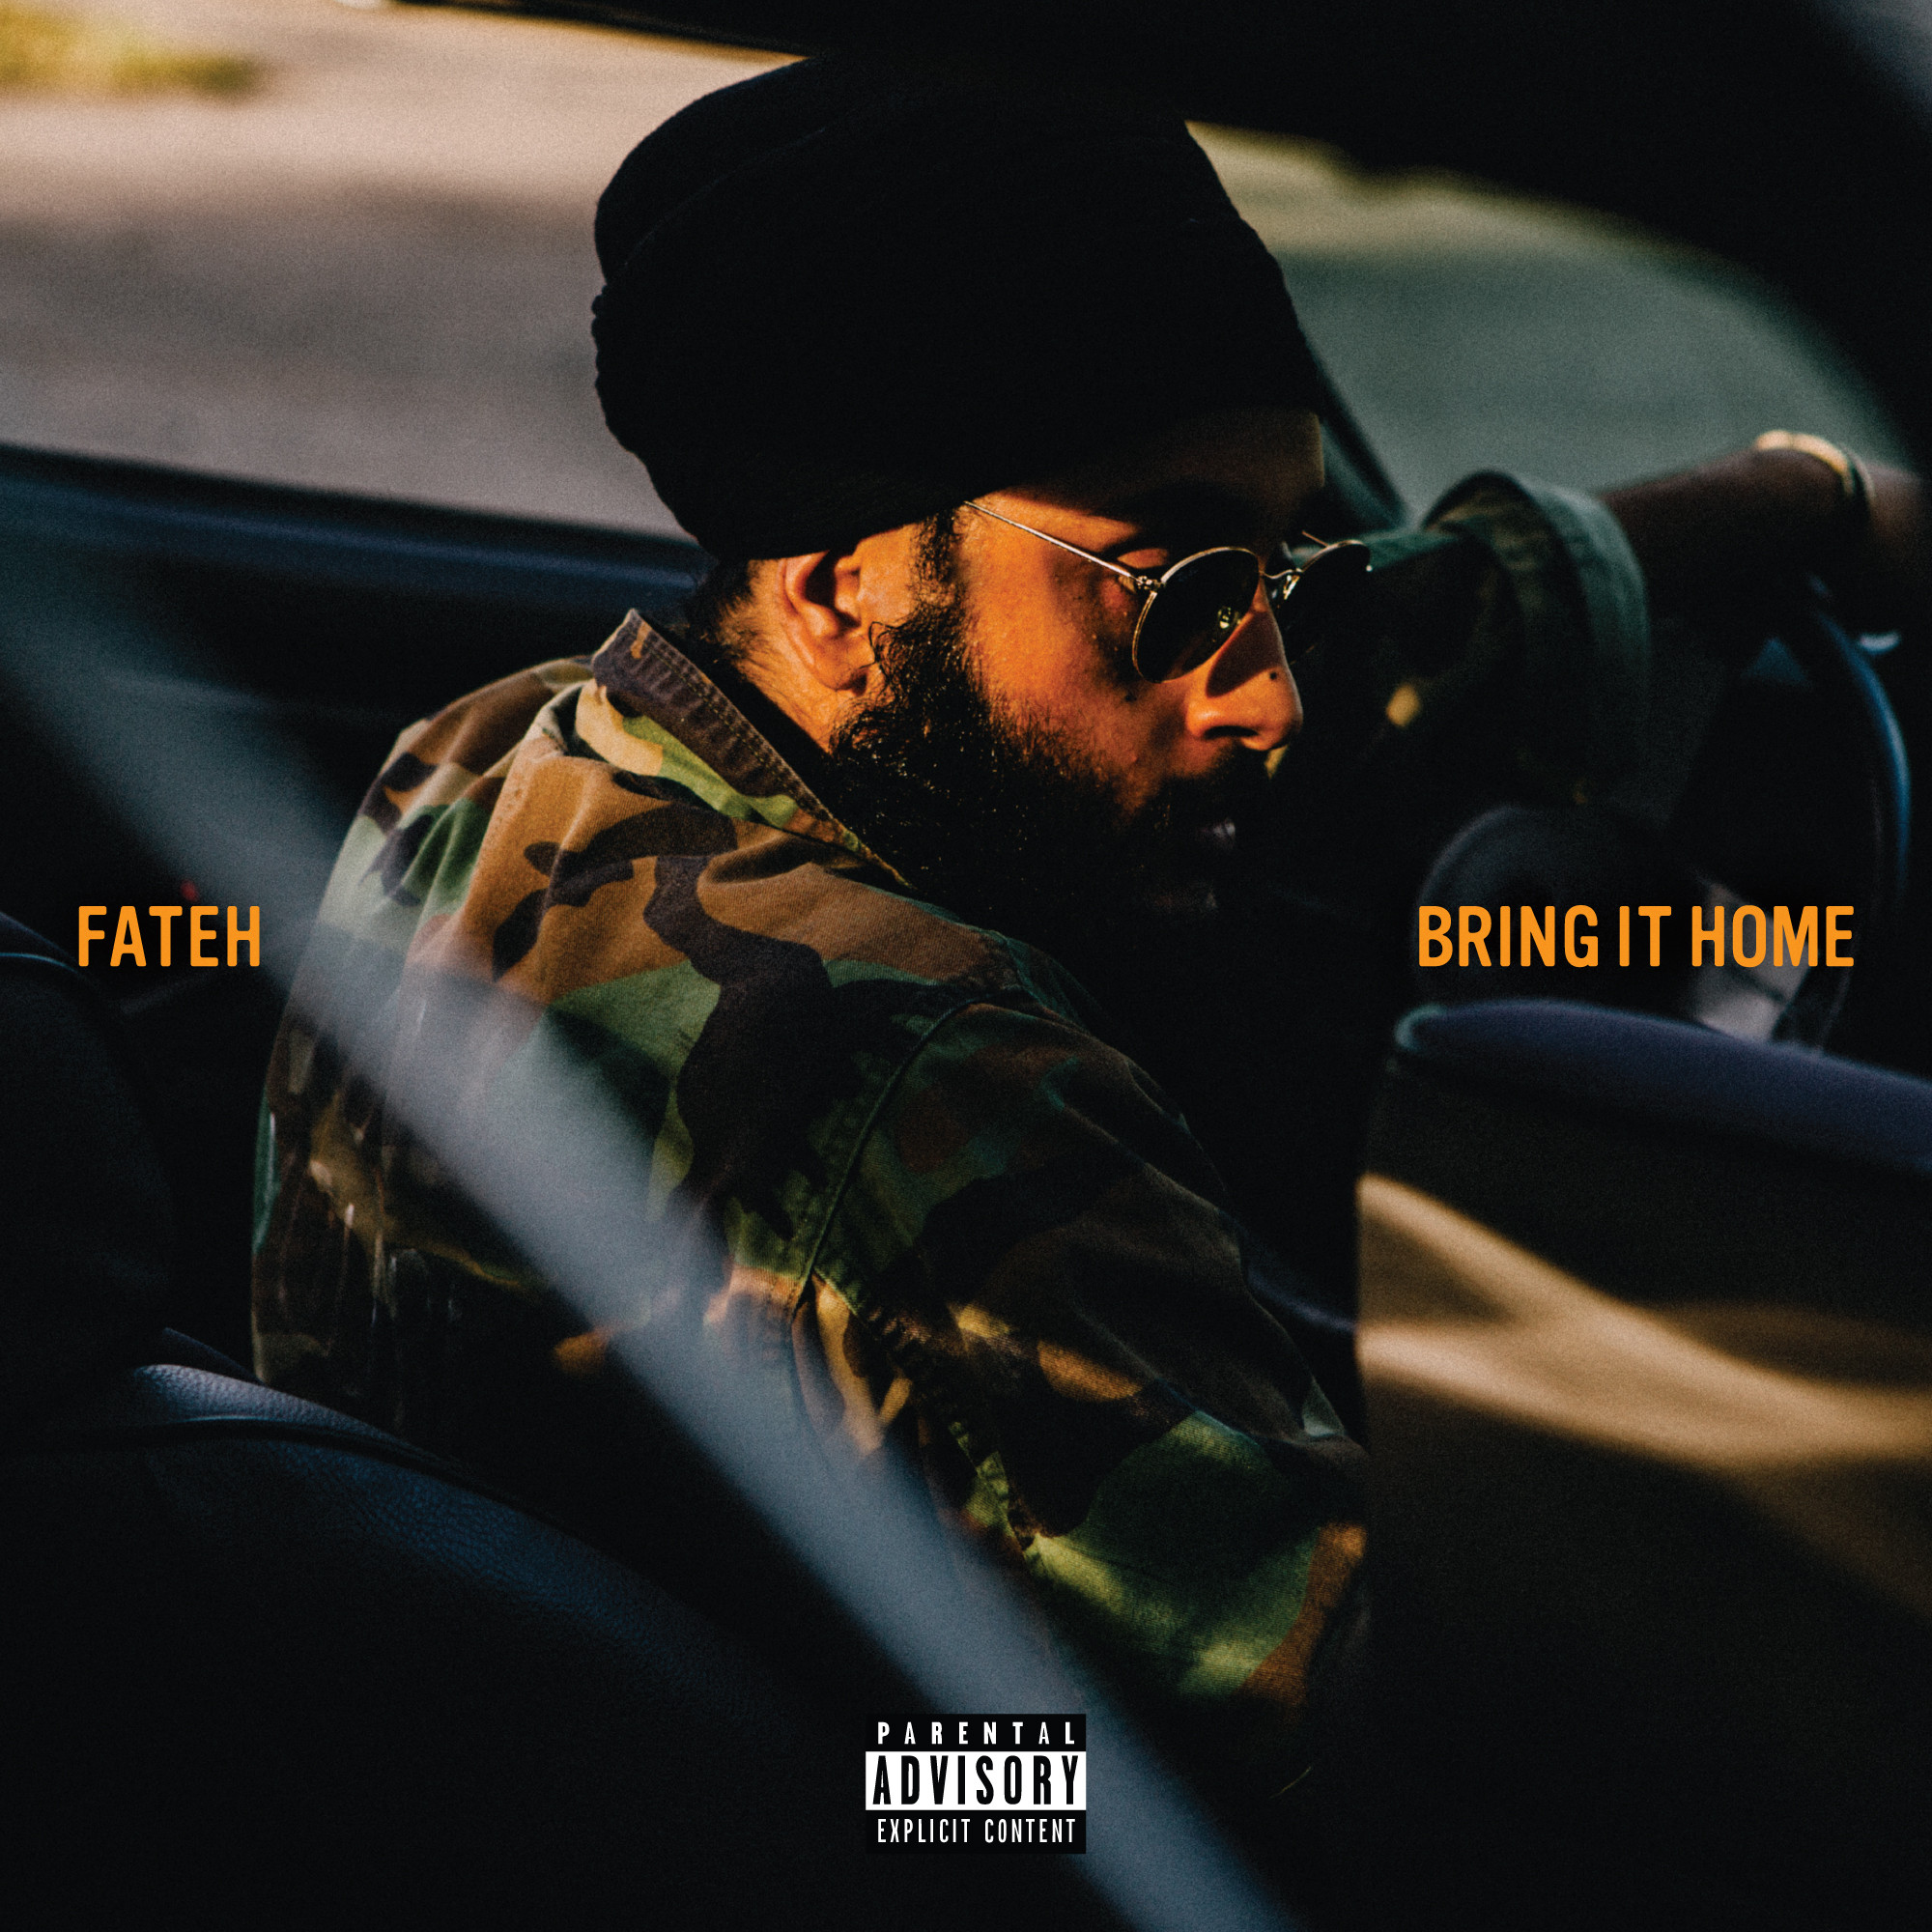 fateh_bring-it-home-album_artwork-final-update